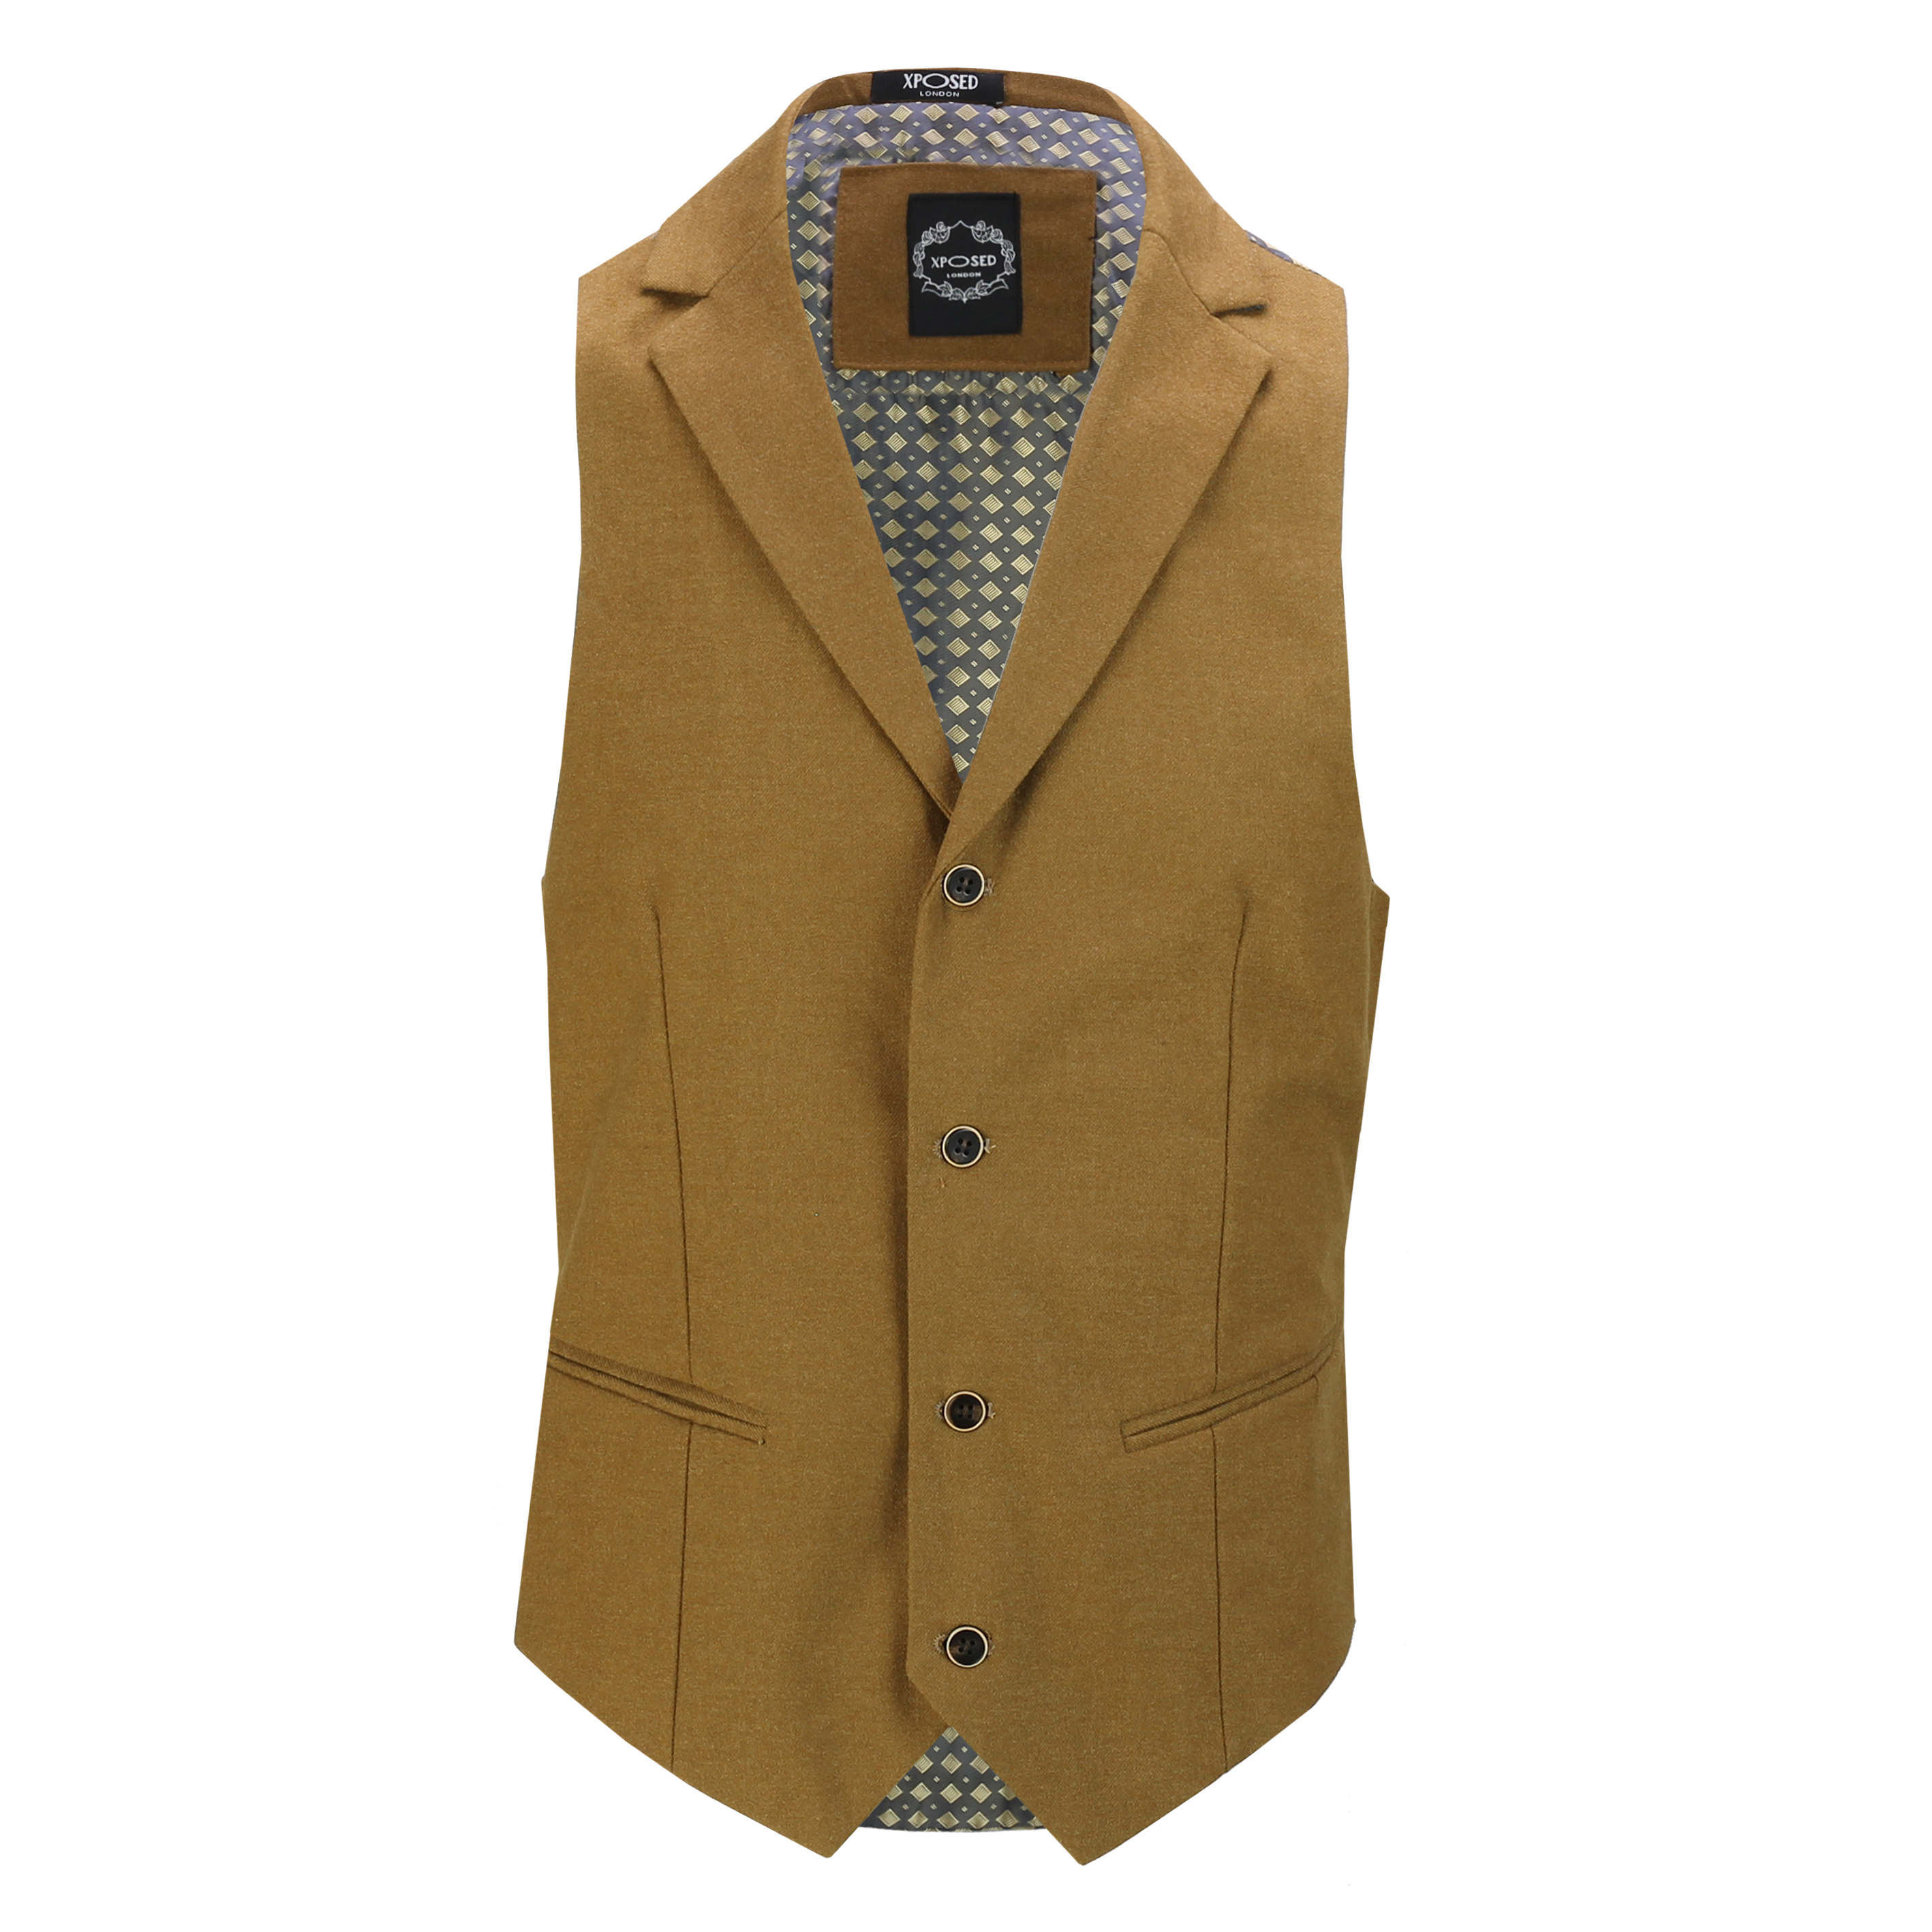 Mens-Classic-Collar-Waistcoat-Retro-Vintage-Style-Tailored-Fit-Smart-Formal-Vest thumbnail 24